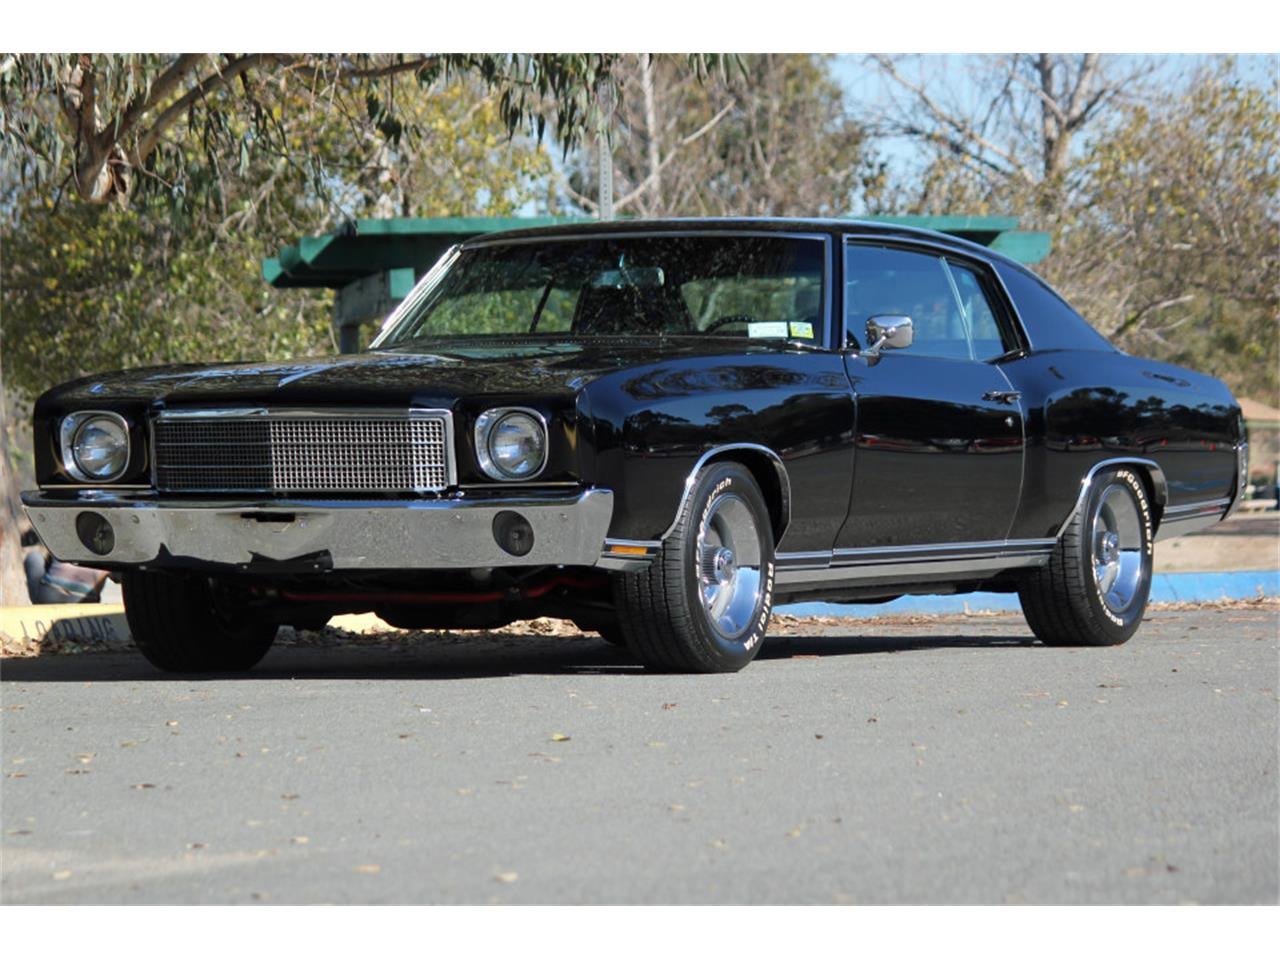 Large Picture of '70 Chevrolet Monte Carlo located in CA - California - $39,500.00 Offered by Precious Metals - PWFG